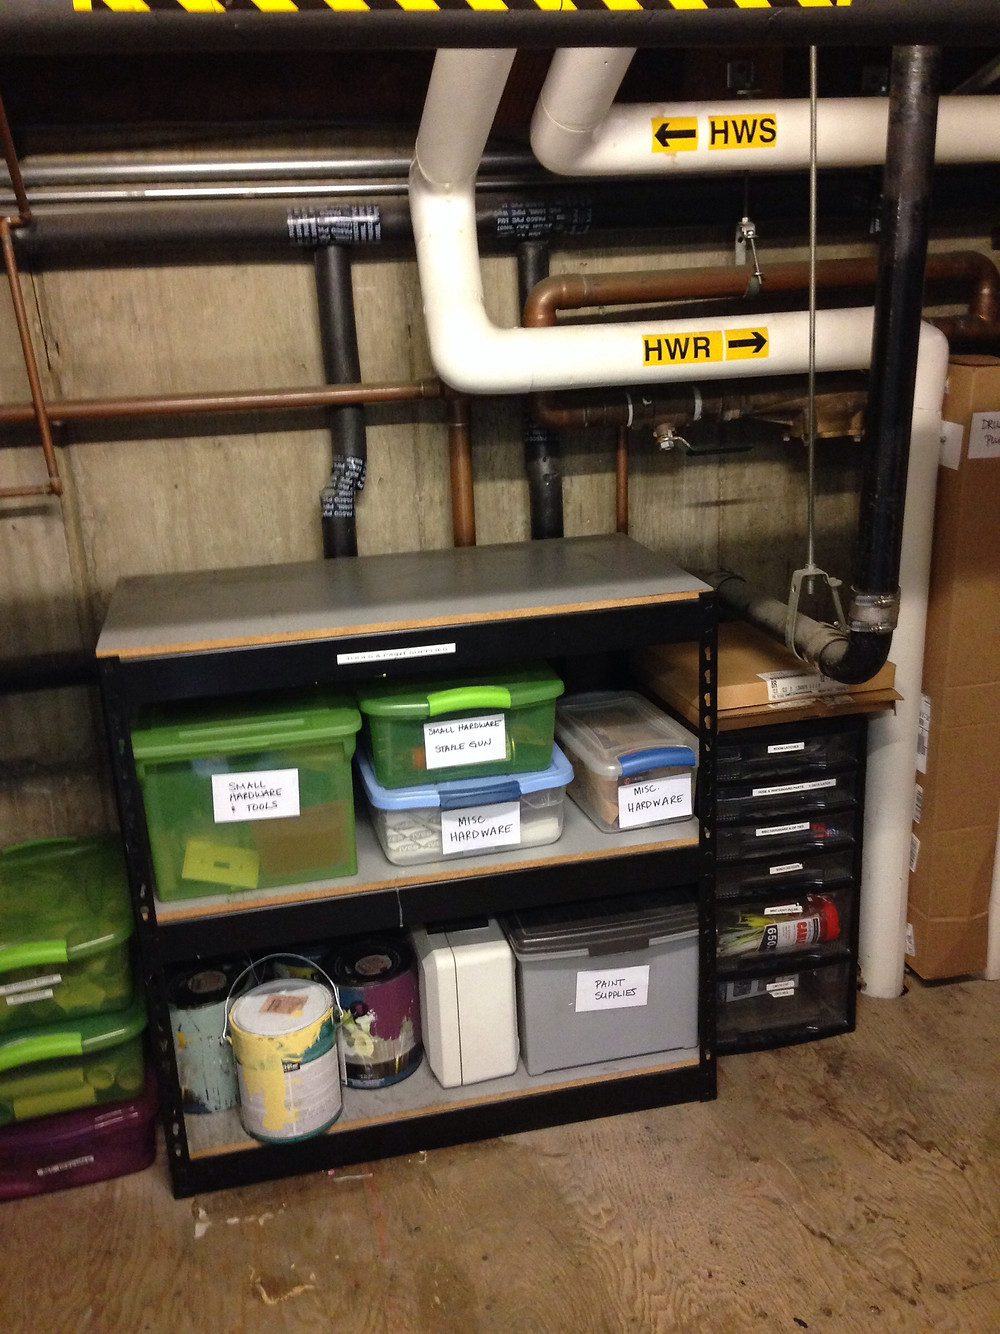 OLWH: Organizing for Dogs - and Humans -- Making use of all available storage space with bins of various sizes